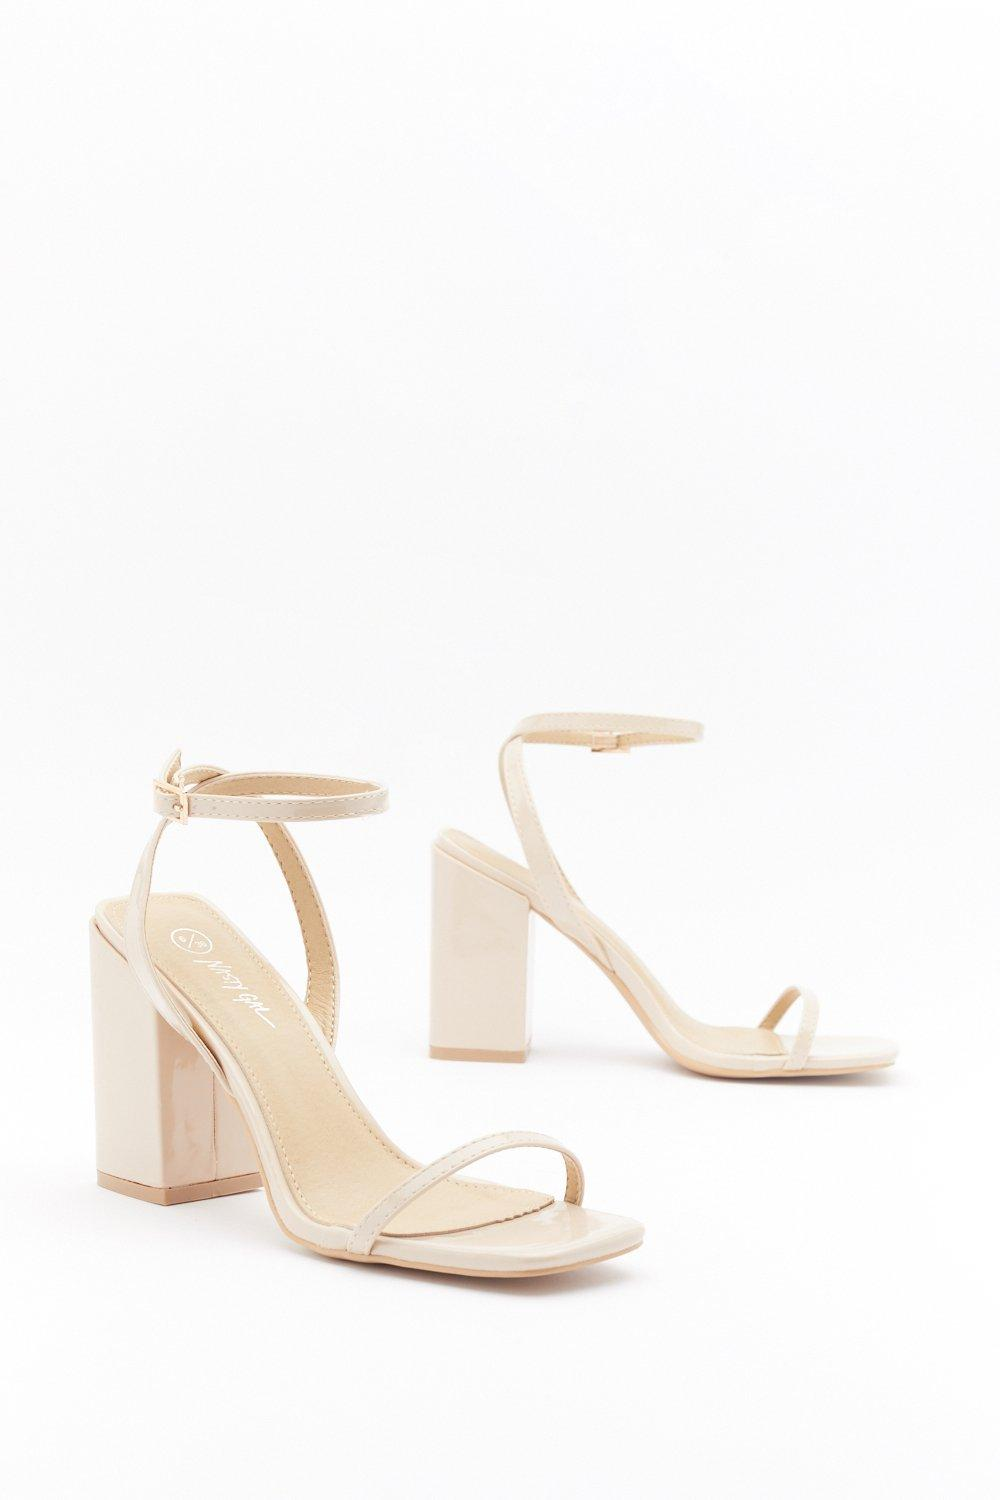 I Won't Square Strappy Block Heel Sandals | Nasty Gal